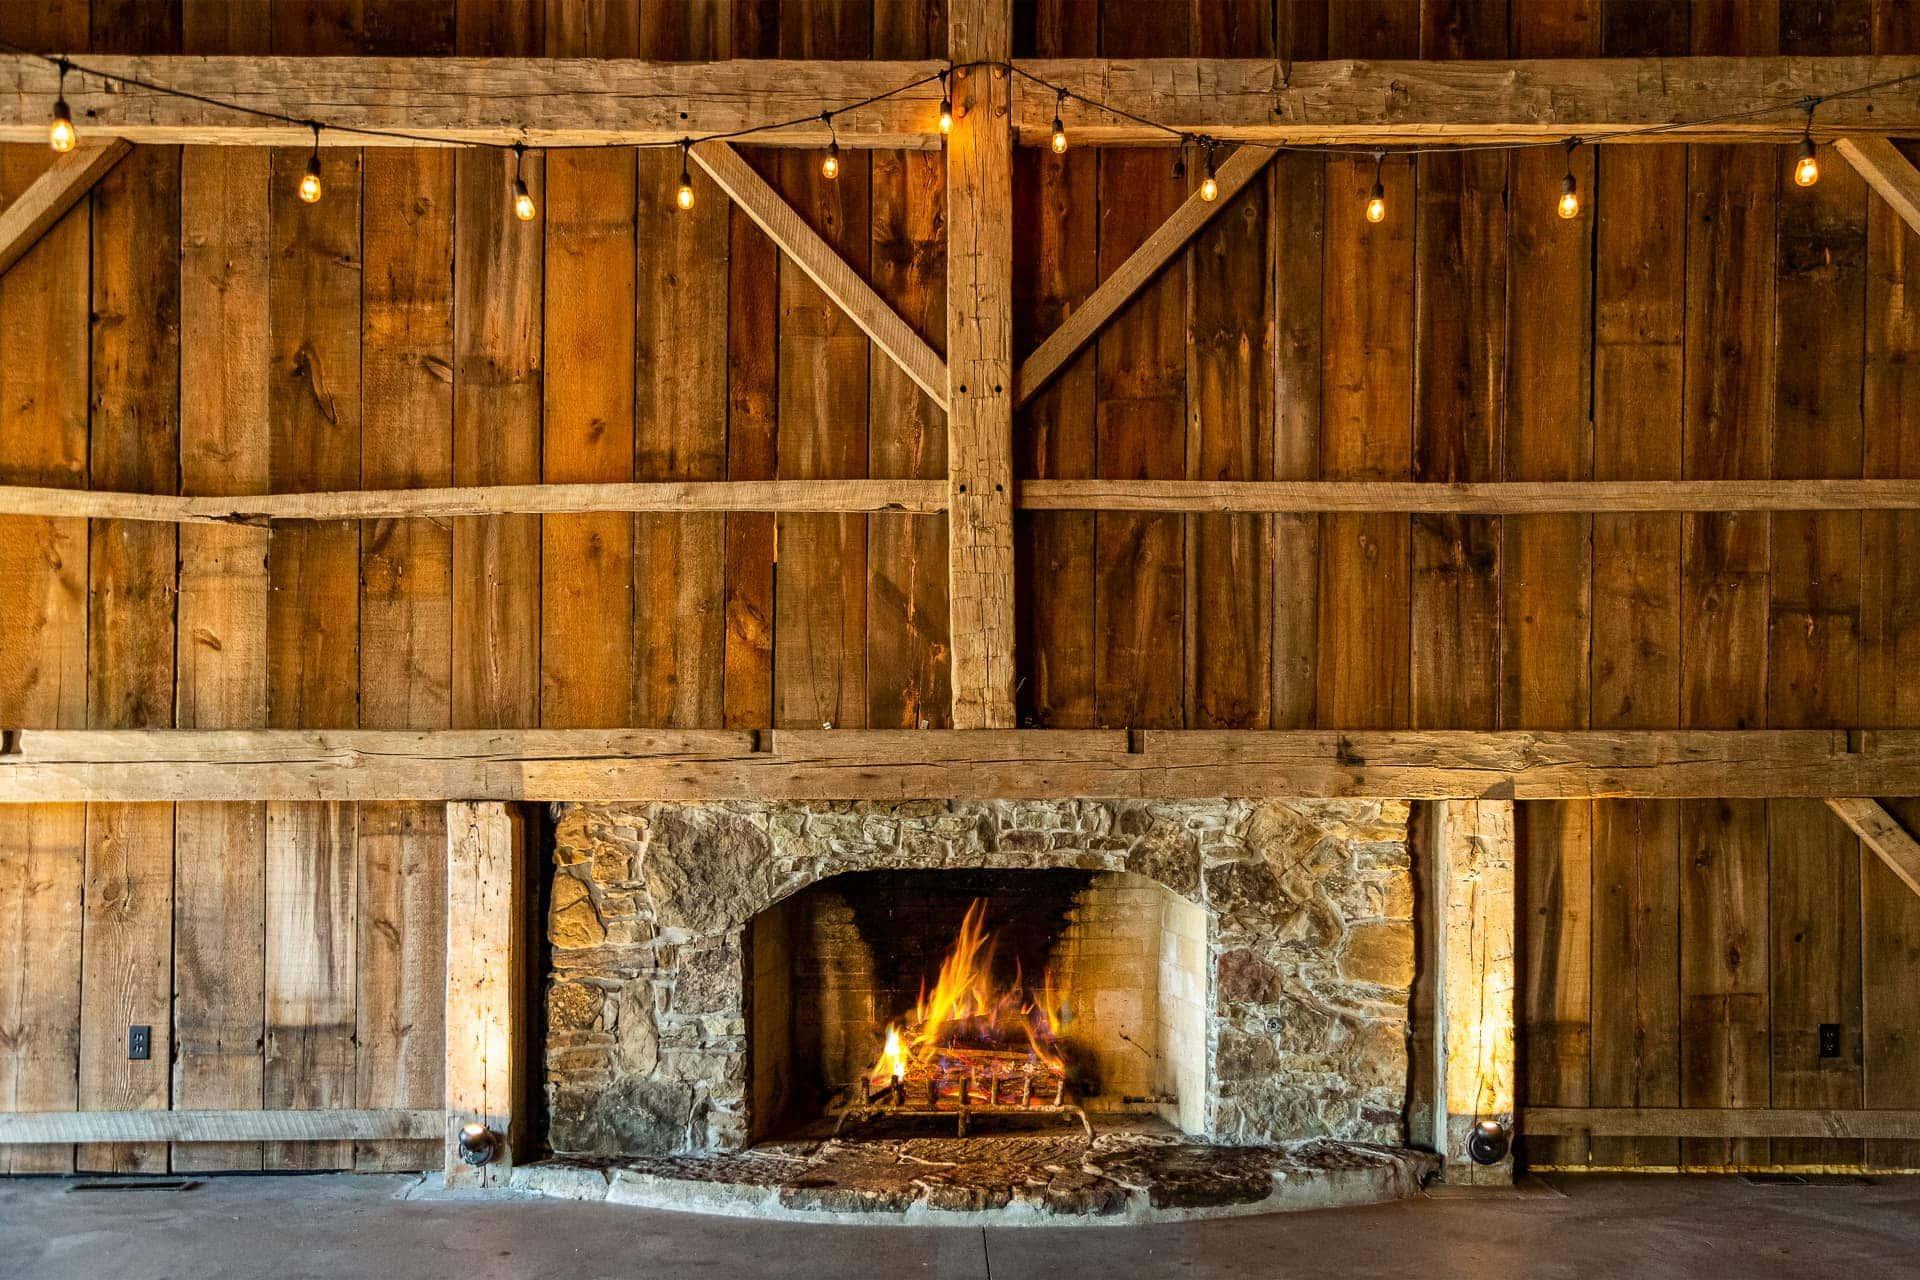 Fireplace in the Barn at Esperanza Ranch